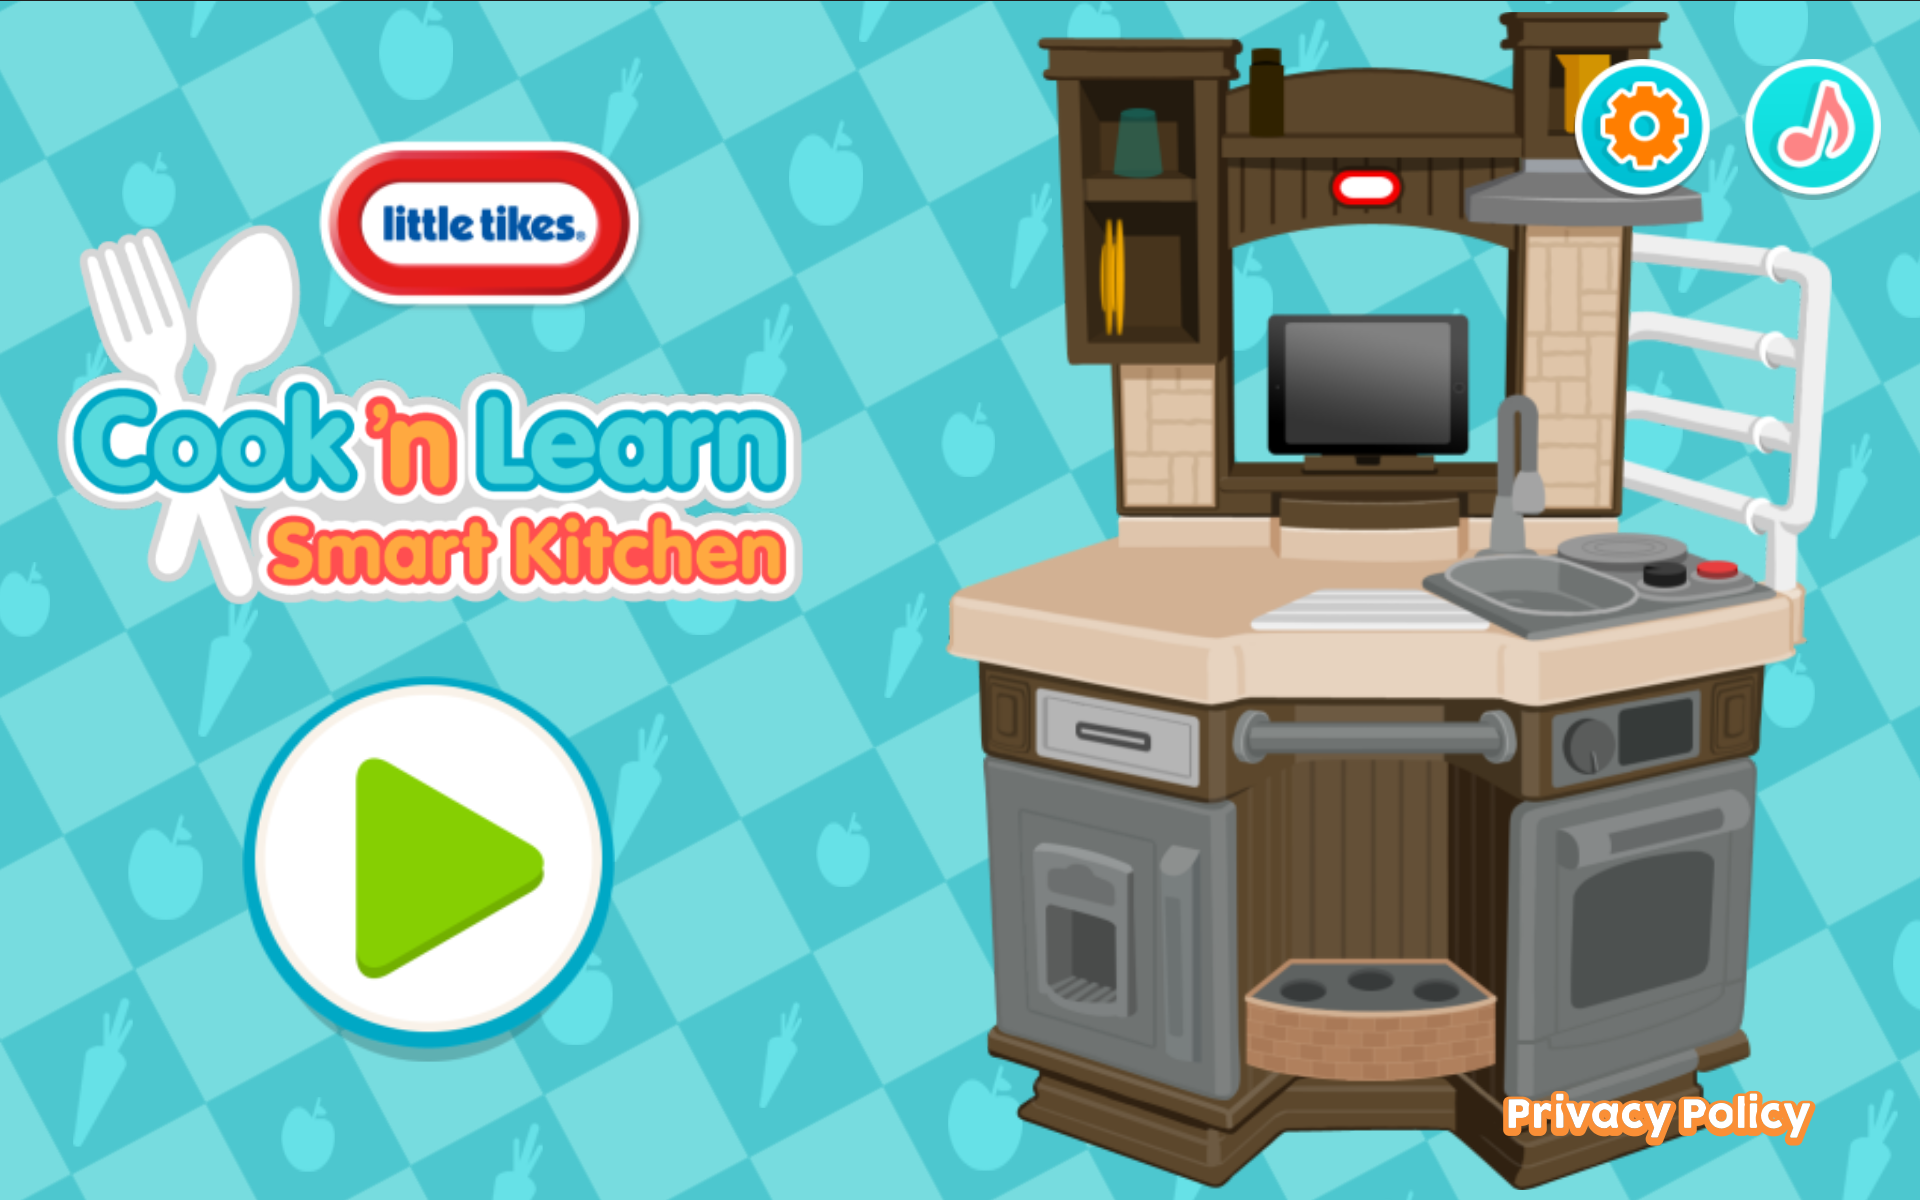 Little Tikes Cook \'n Learn Smart Kitchen: Amazon.co.uk: Appstore for ...